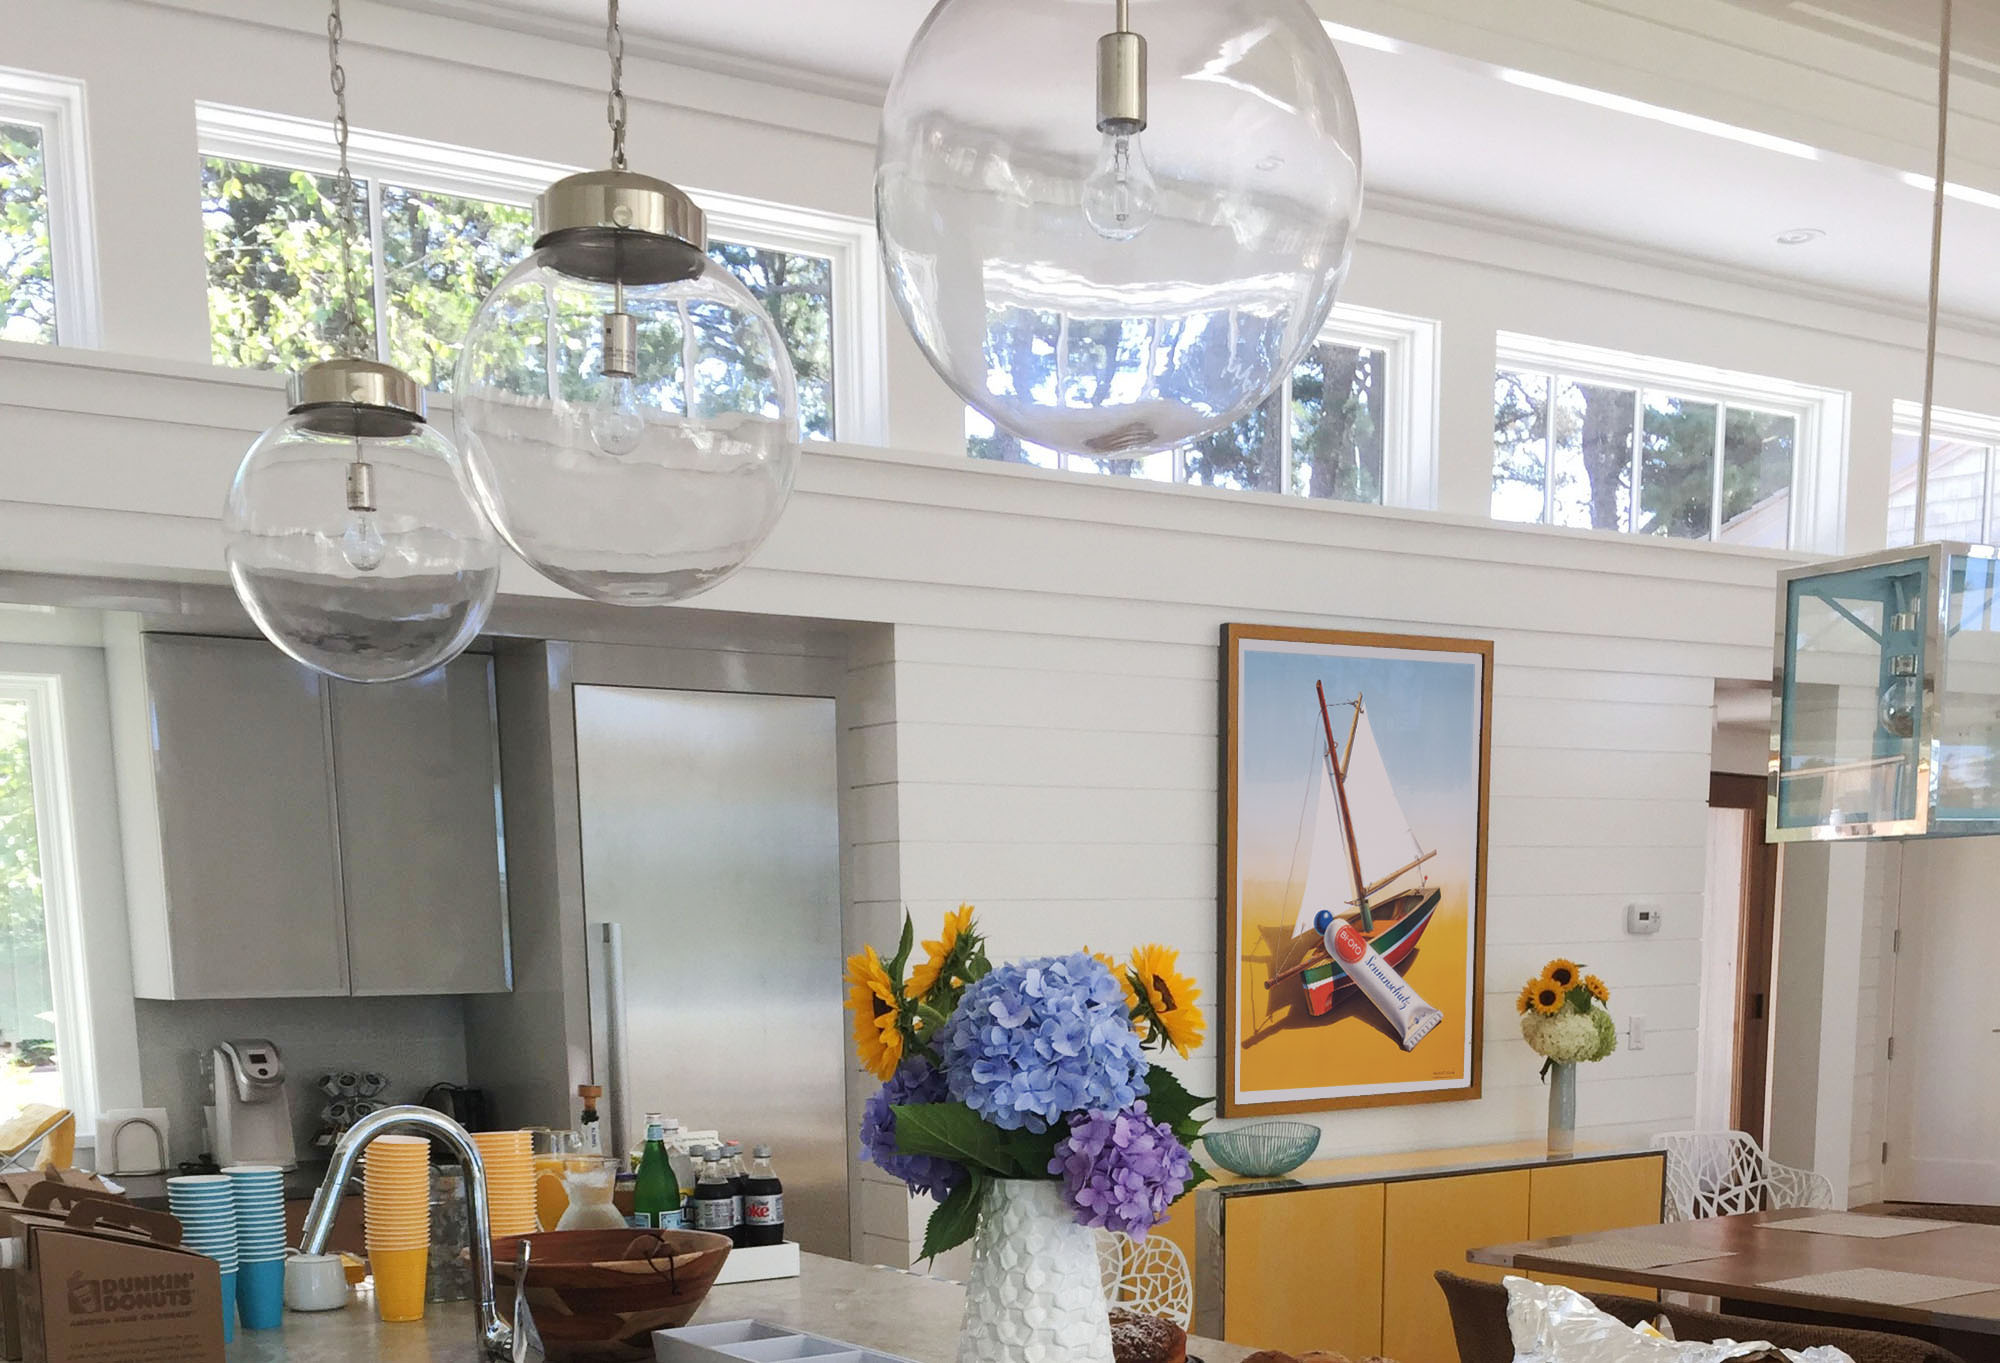 Colorful, well-lit kitchen with fresh flowers and poster with sailboat; yellow, blue, white